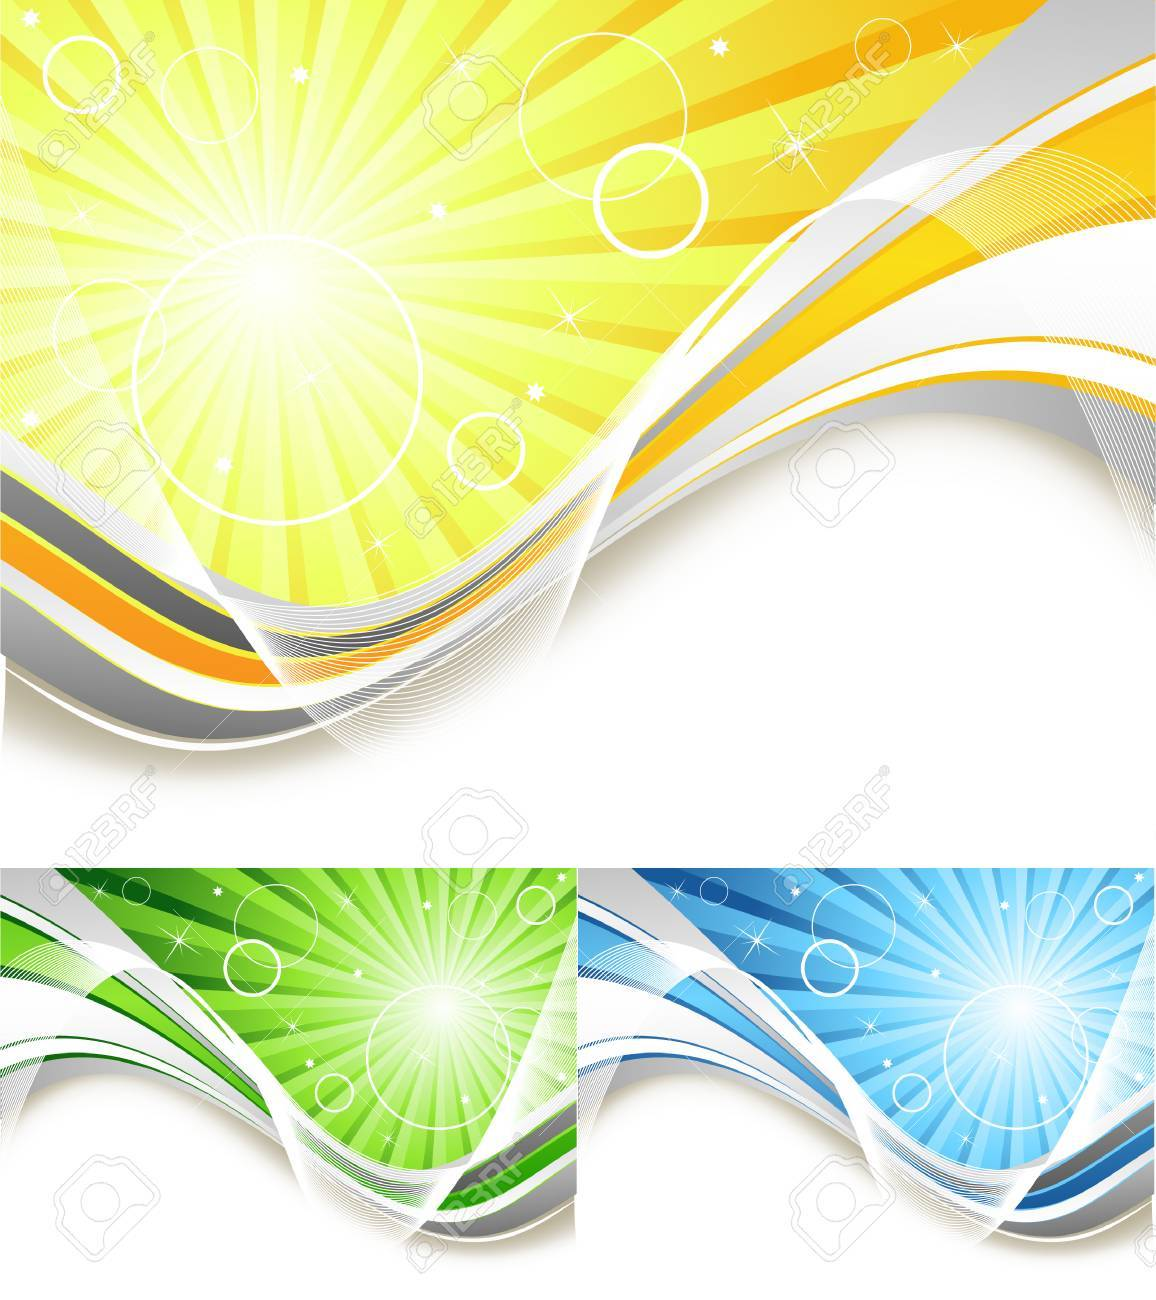 bright vector background with sunbeams in three colors Stock Vector - 6524634